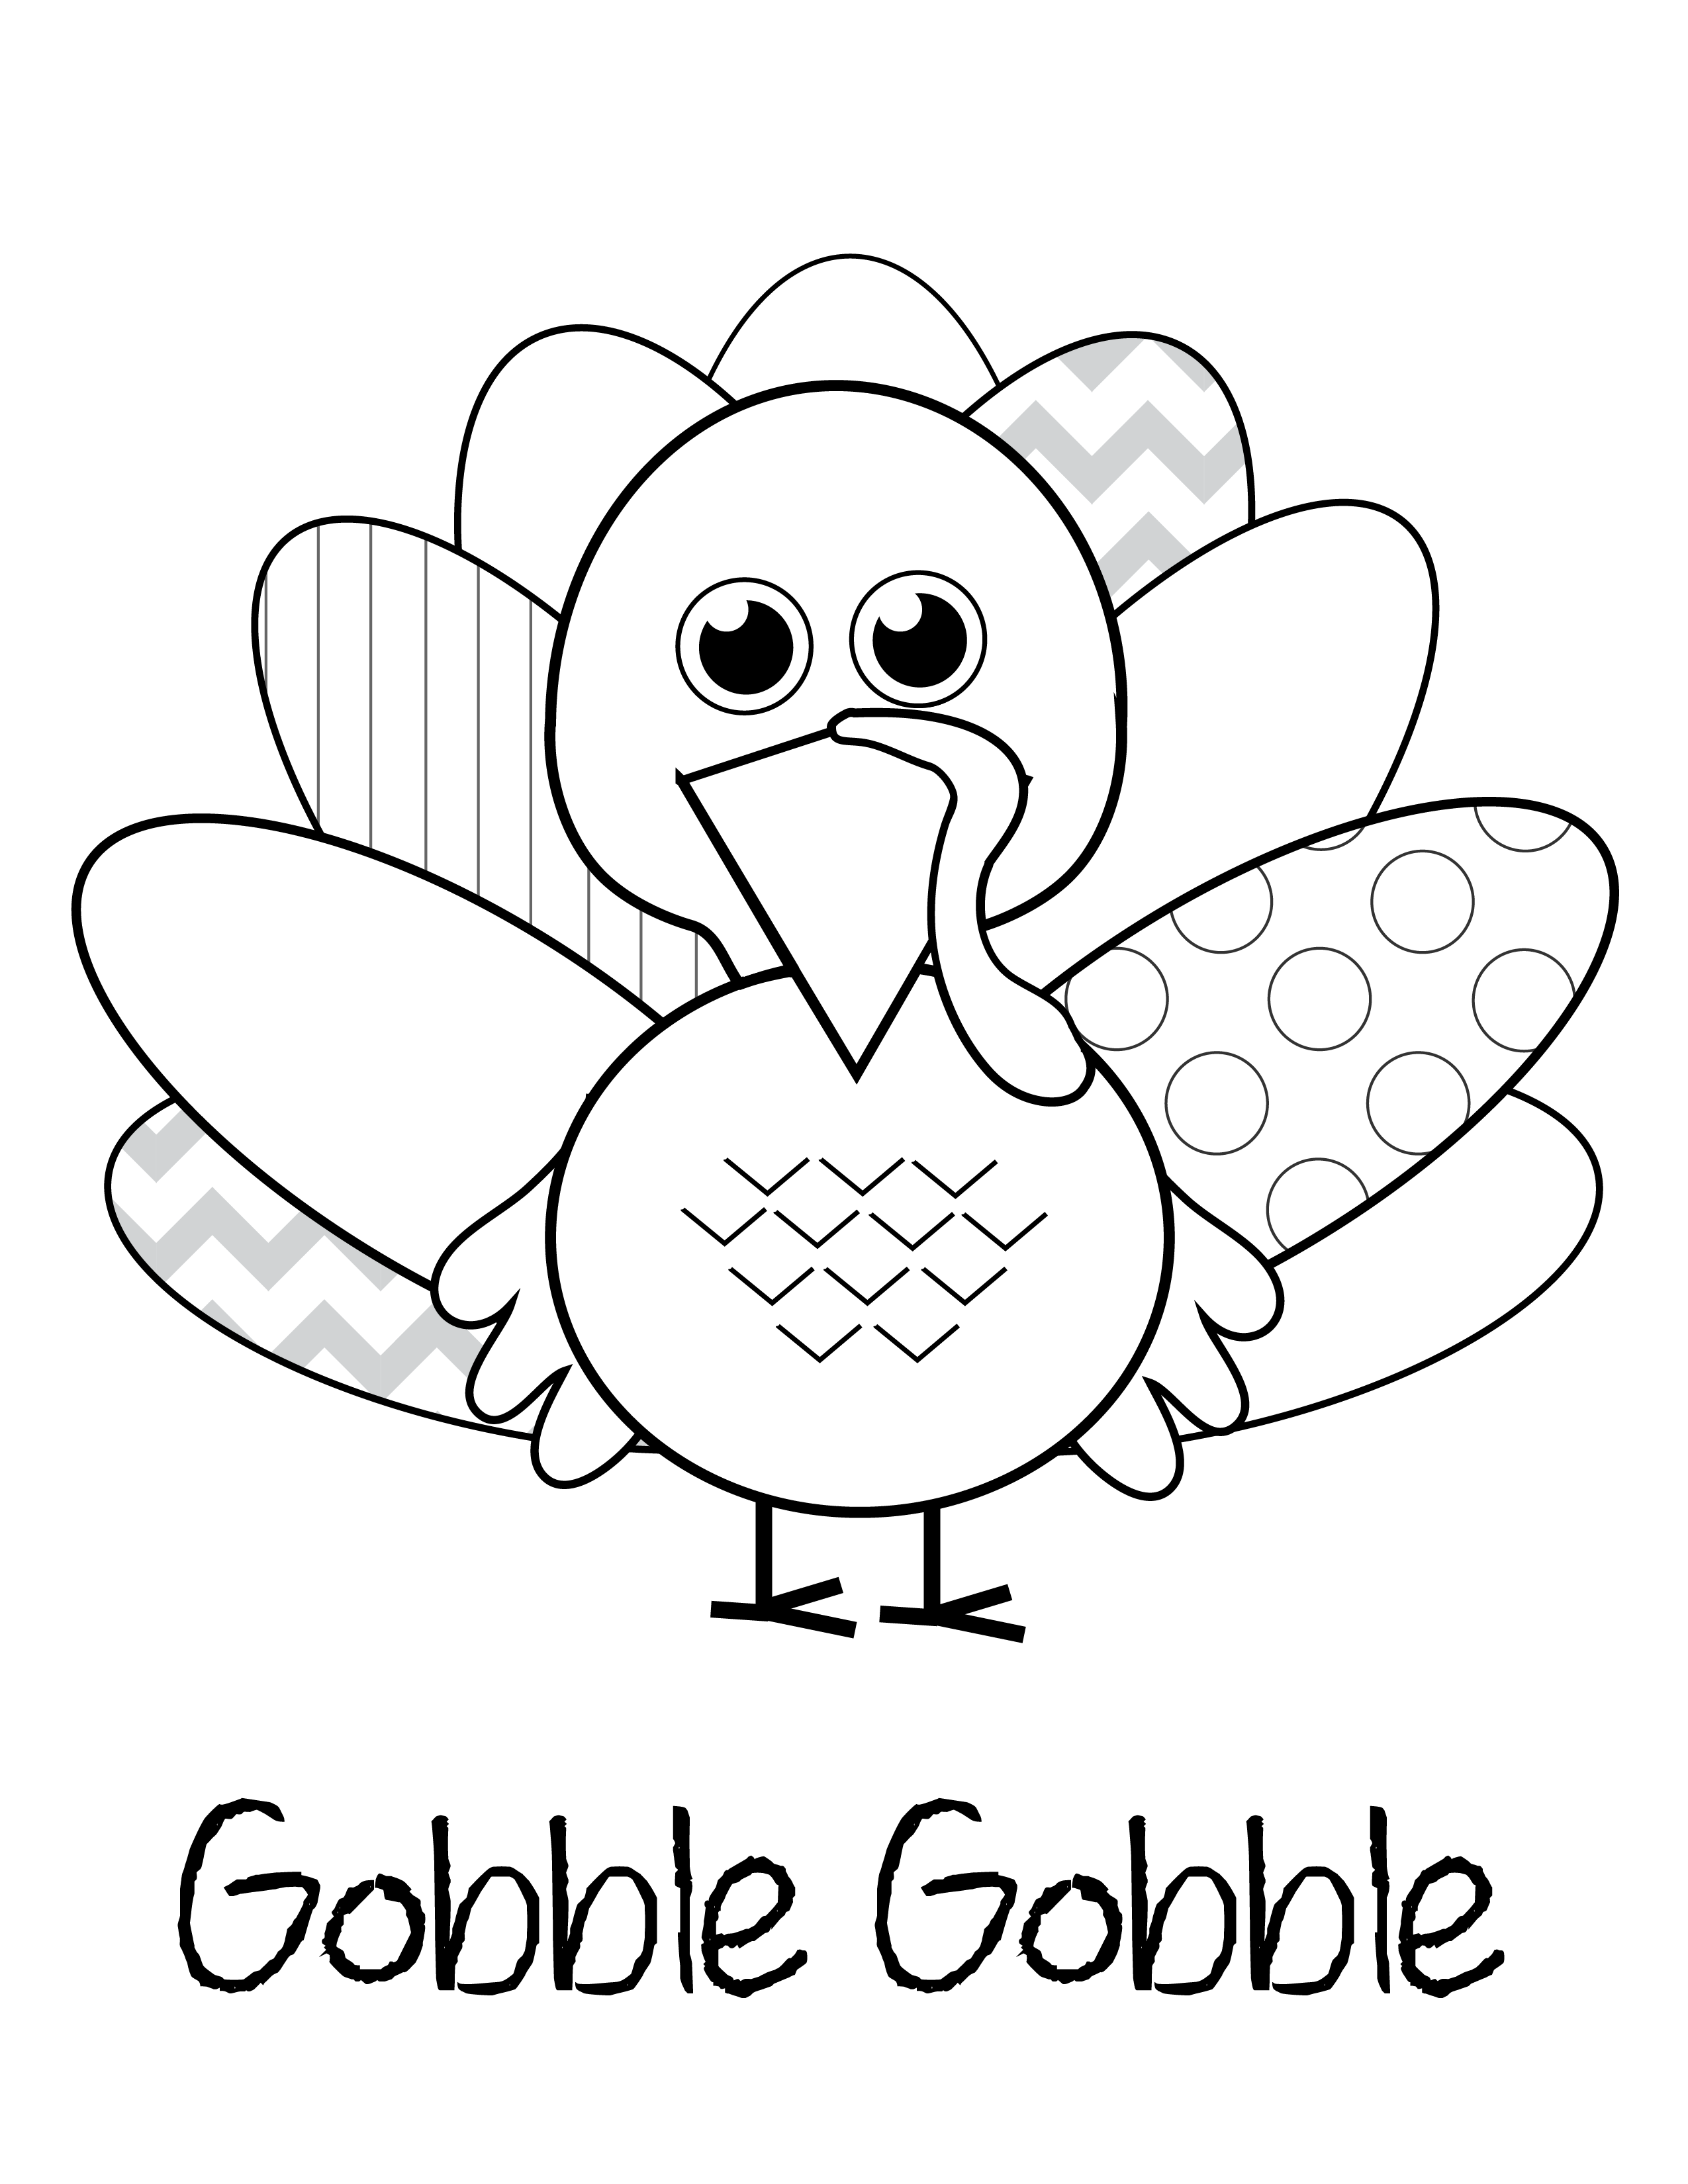 turkey coloring turkey coloring pages for kids coloring pages for kids turkey coloring